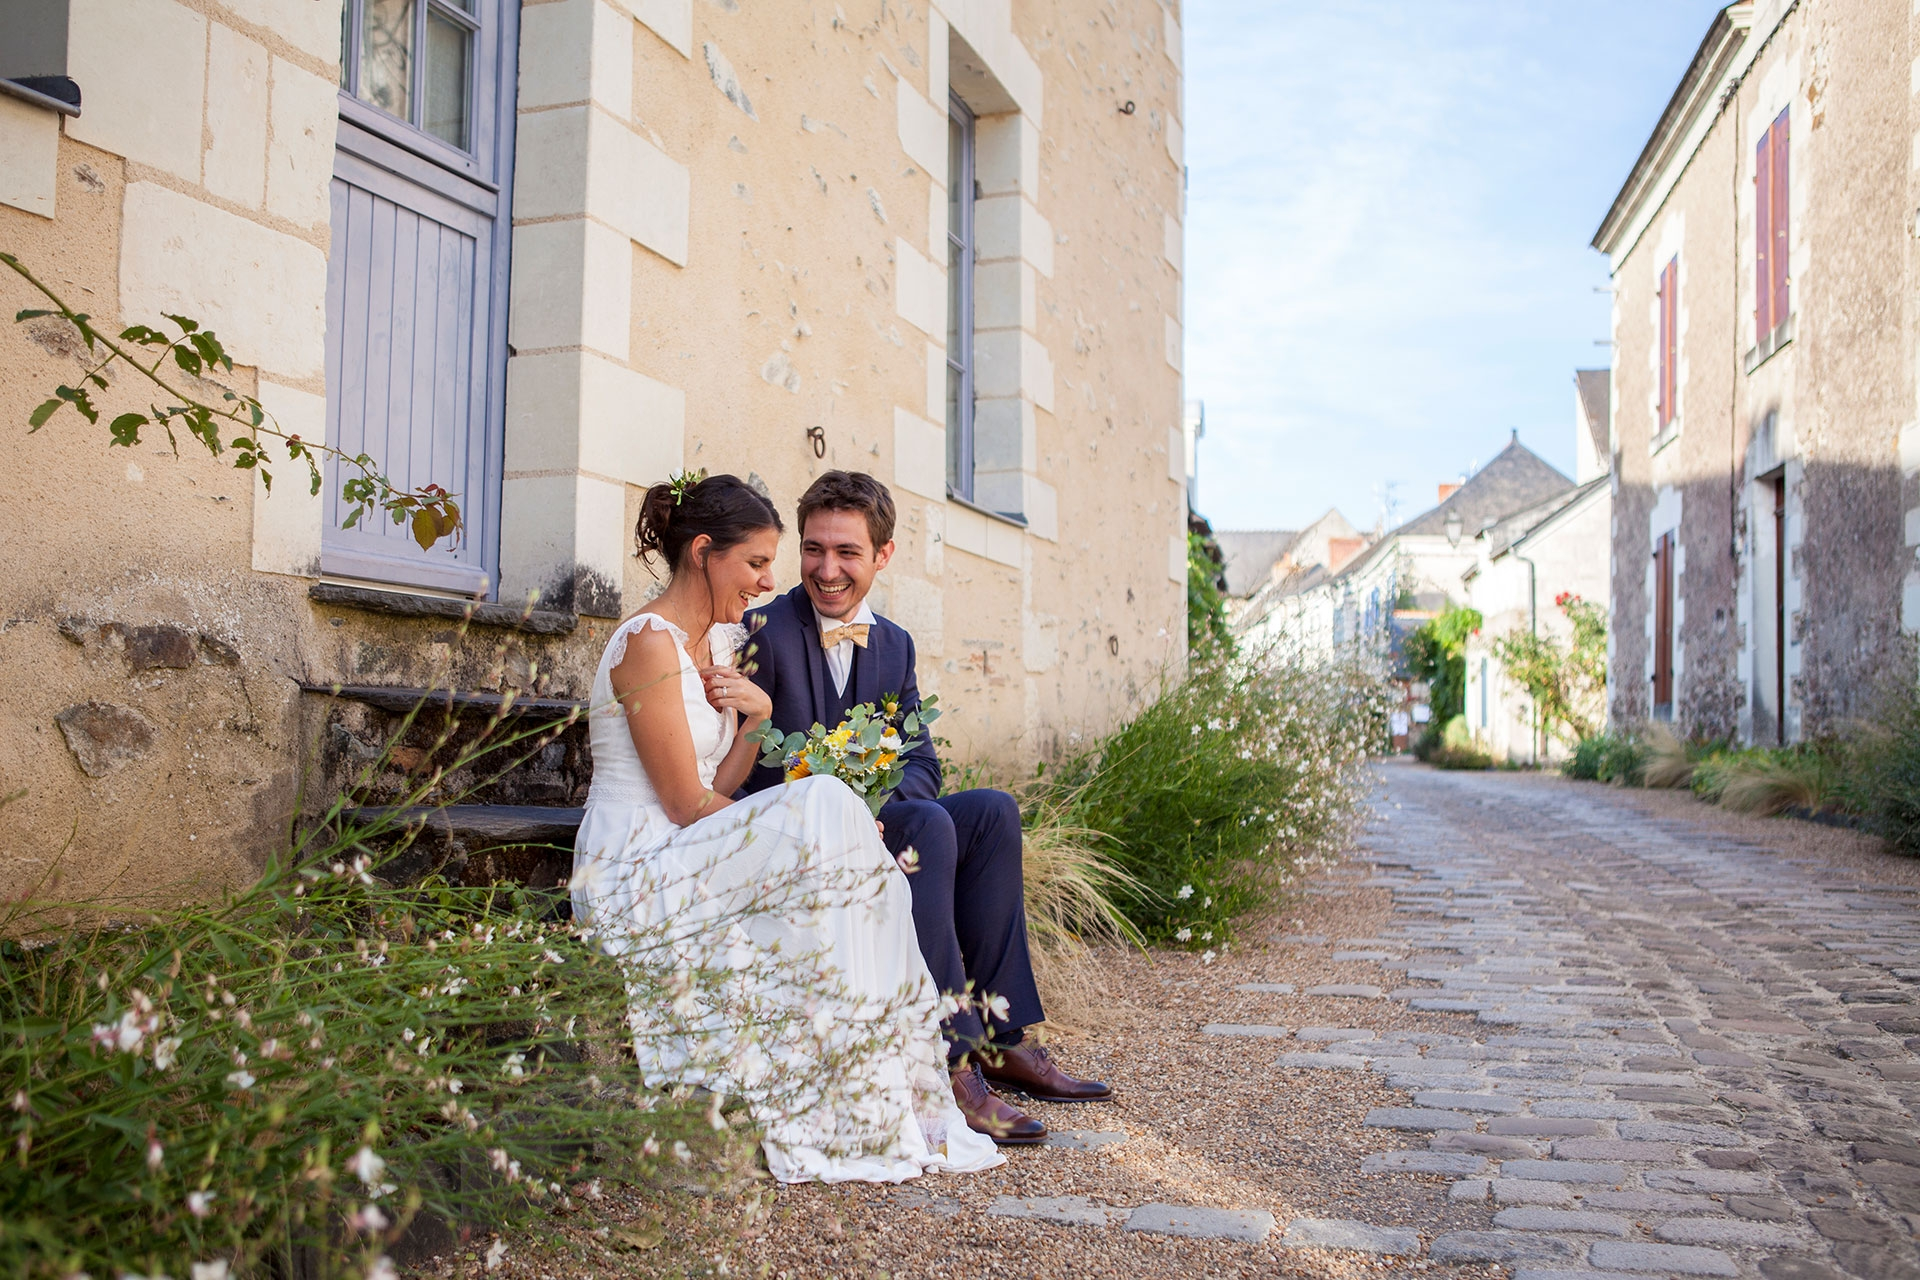 particuliers-evenements-mariage-oui-elise&quentin-65